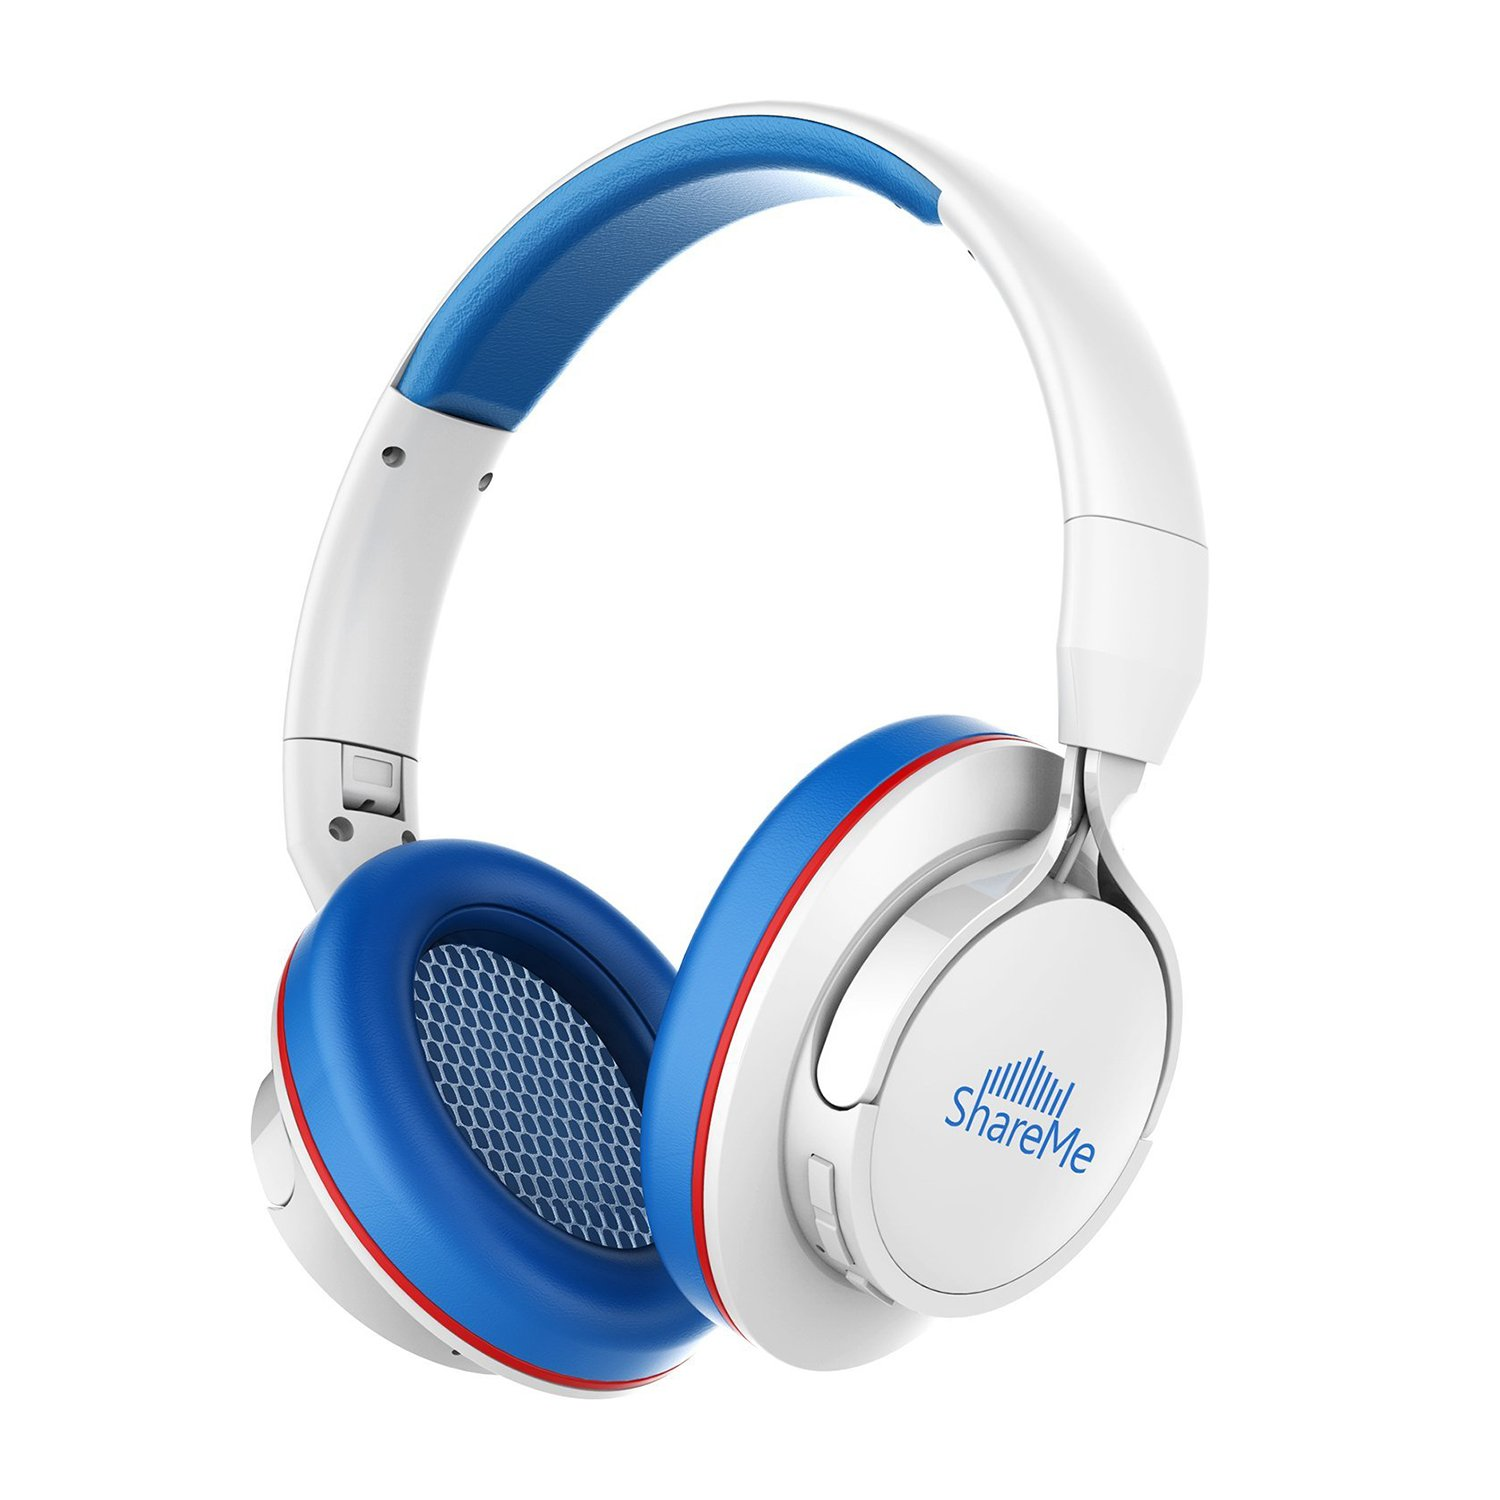 7b0a24d8d8f [CNET's Pick] Over-Ear Bluetooth Headphones,Mixcder® ShareMe Wireless Music  Stereo Sports/Running Foldable Headset Volume Control with Built-in Noise  ...